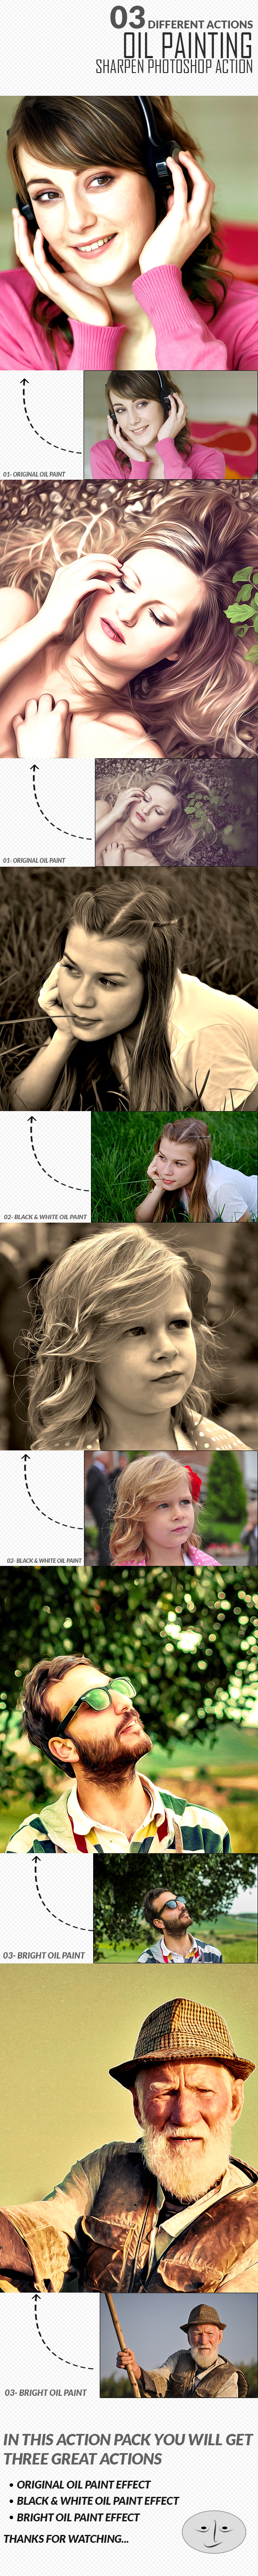 03 Different Oil Paingting Photoshop Actions - Photo Effects Actions